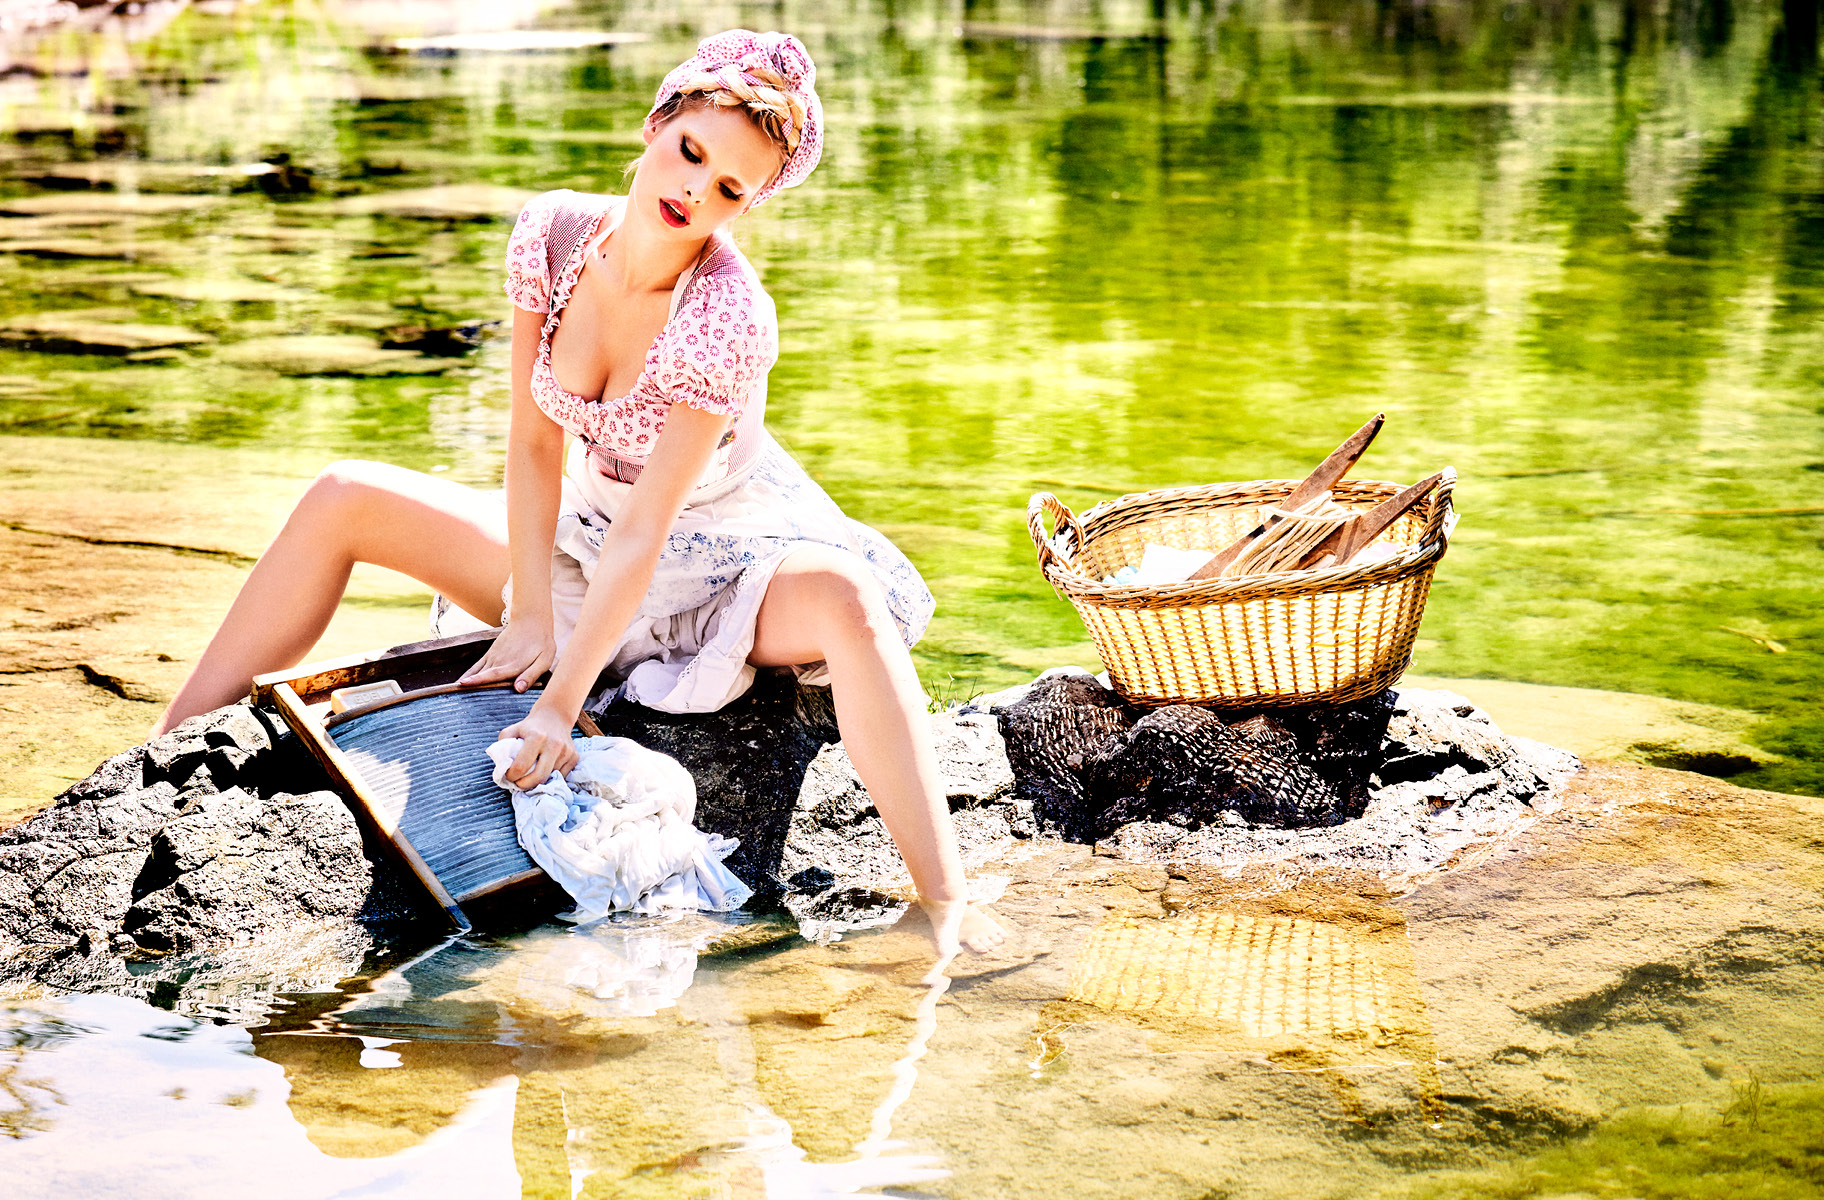 Spirit-&-Flesh-Magazine_Heimat_by-Ellen-von-Unwerth_10